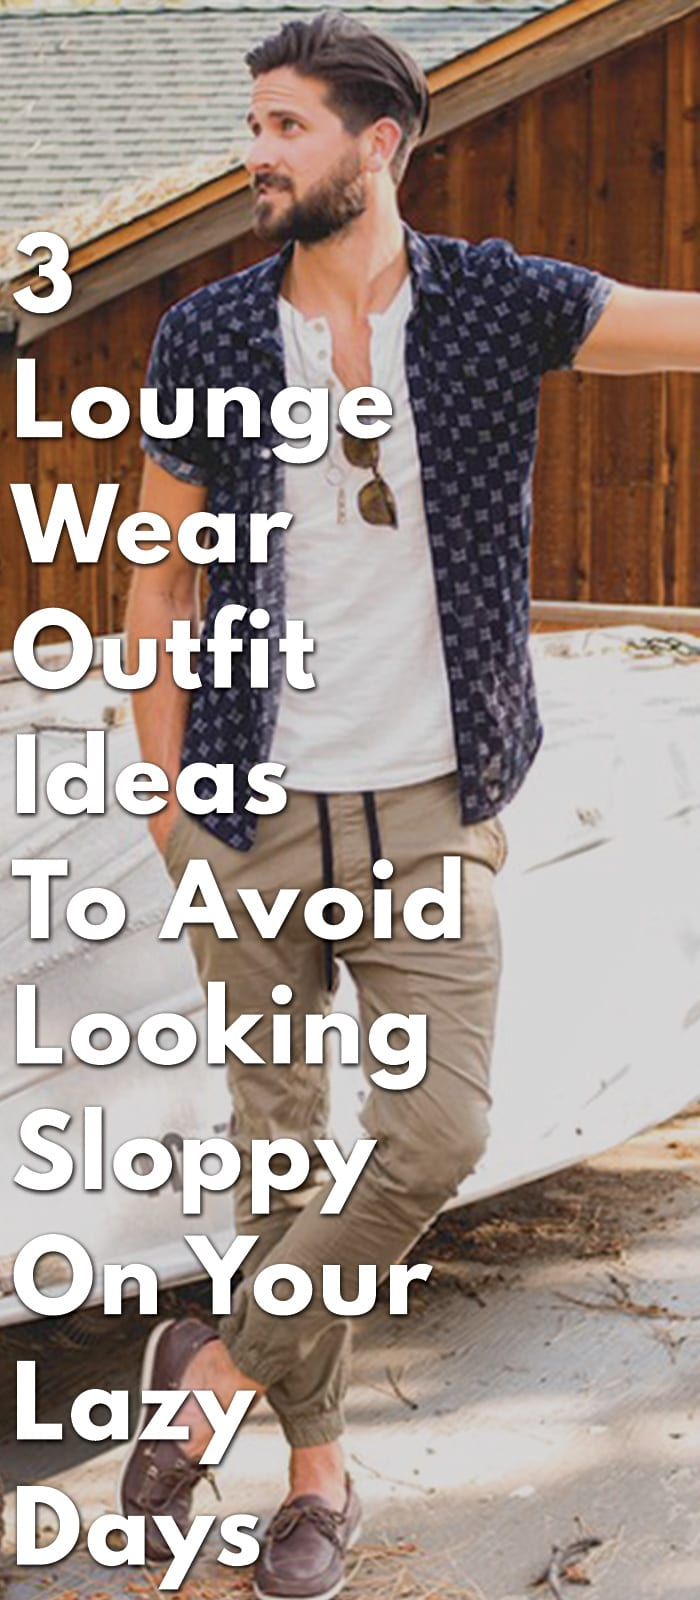 3-Lounge-Wear-Outfit-Ideas-To-Avoid-Looking-Sloppy-On-Your-Lazy-Days